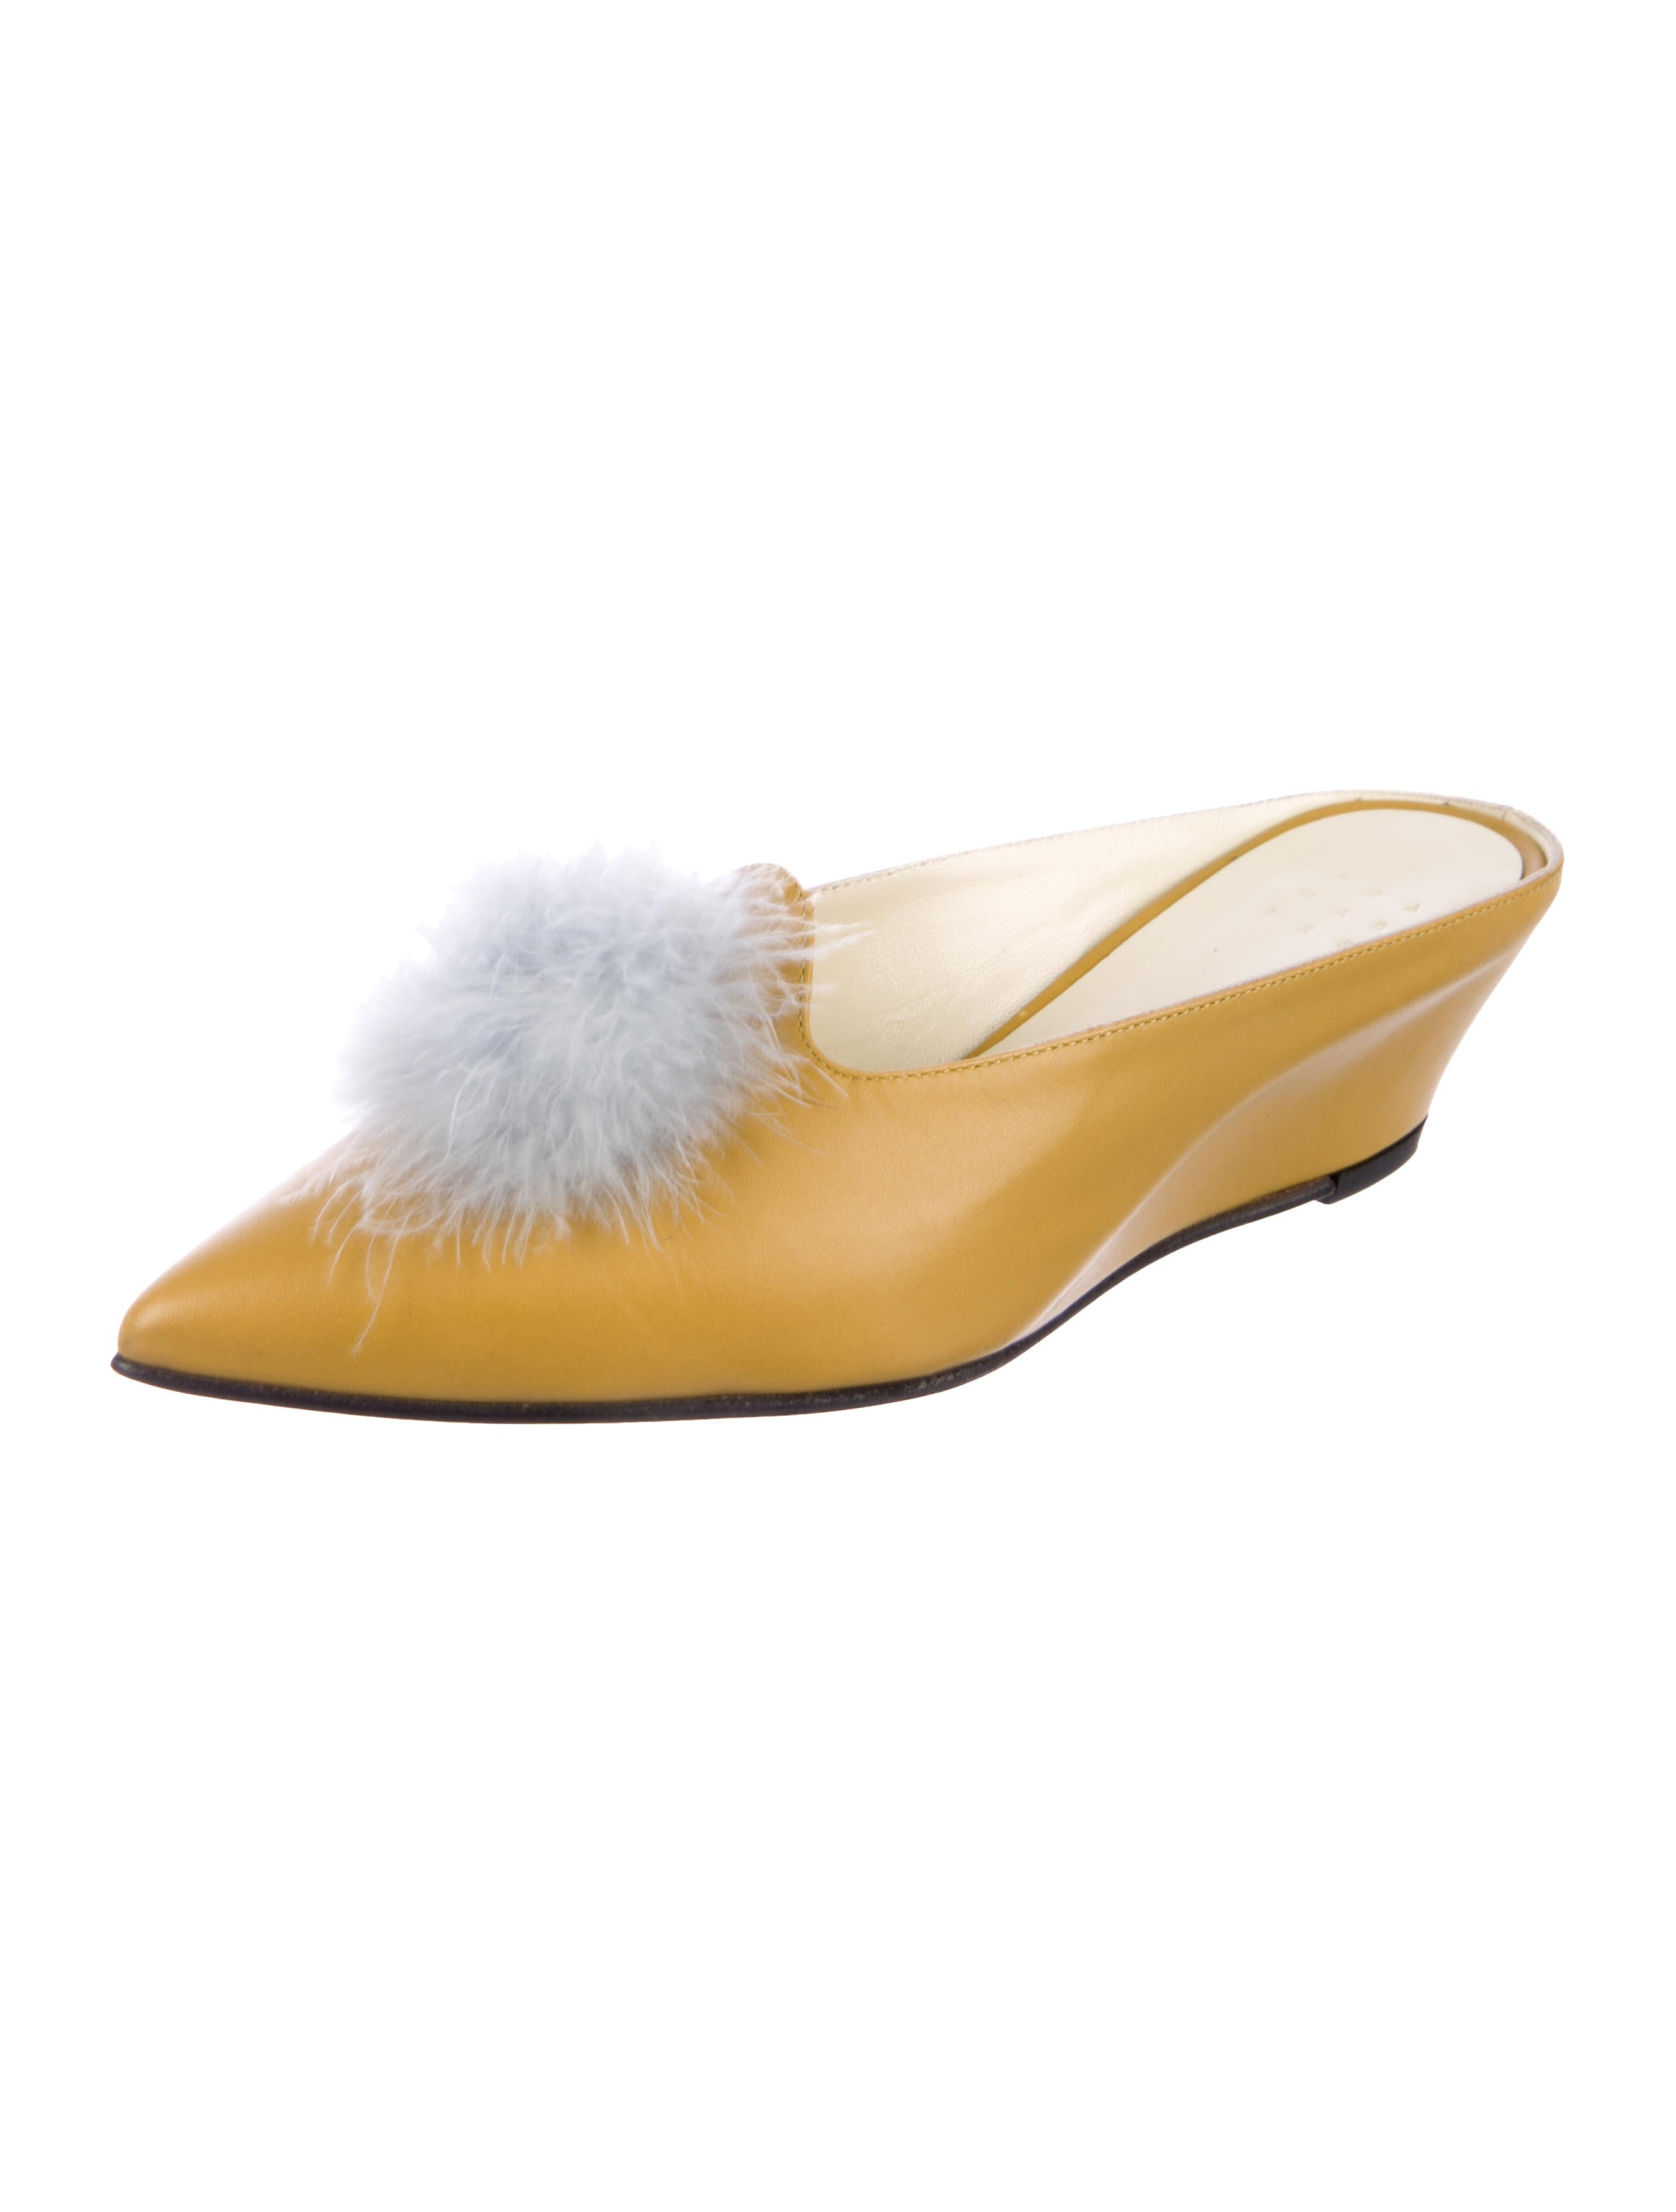 fashion Style online cheap sale best store to get Trademark Feather Pom-Pom Mules quality from china wholesale cheap sale free shipping prices cheap online QuHPlqSI